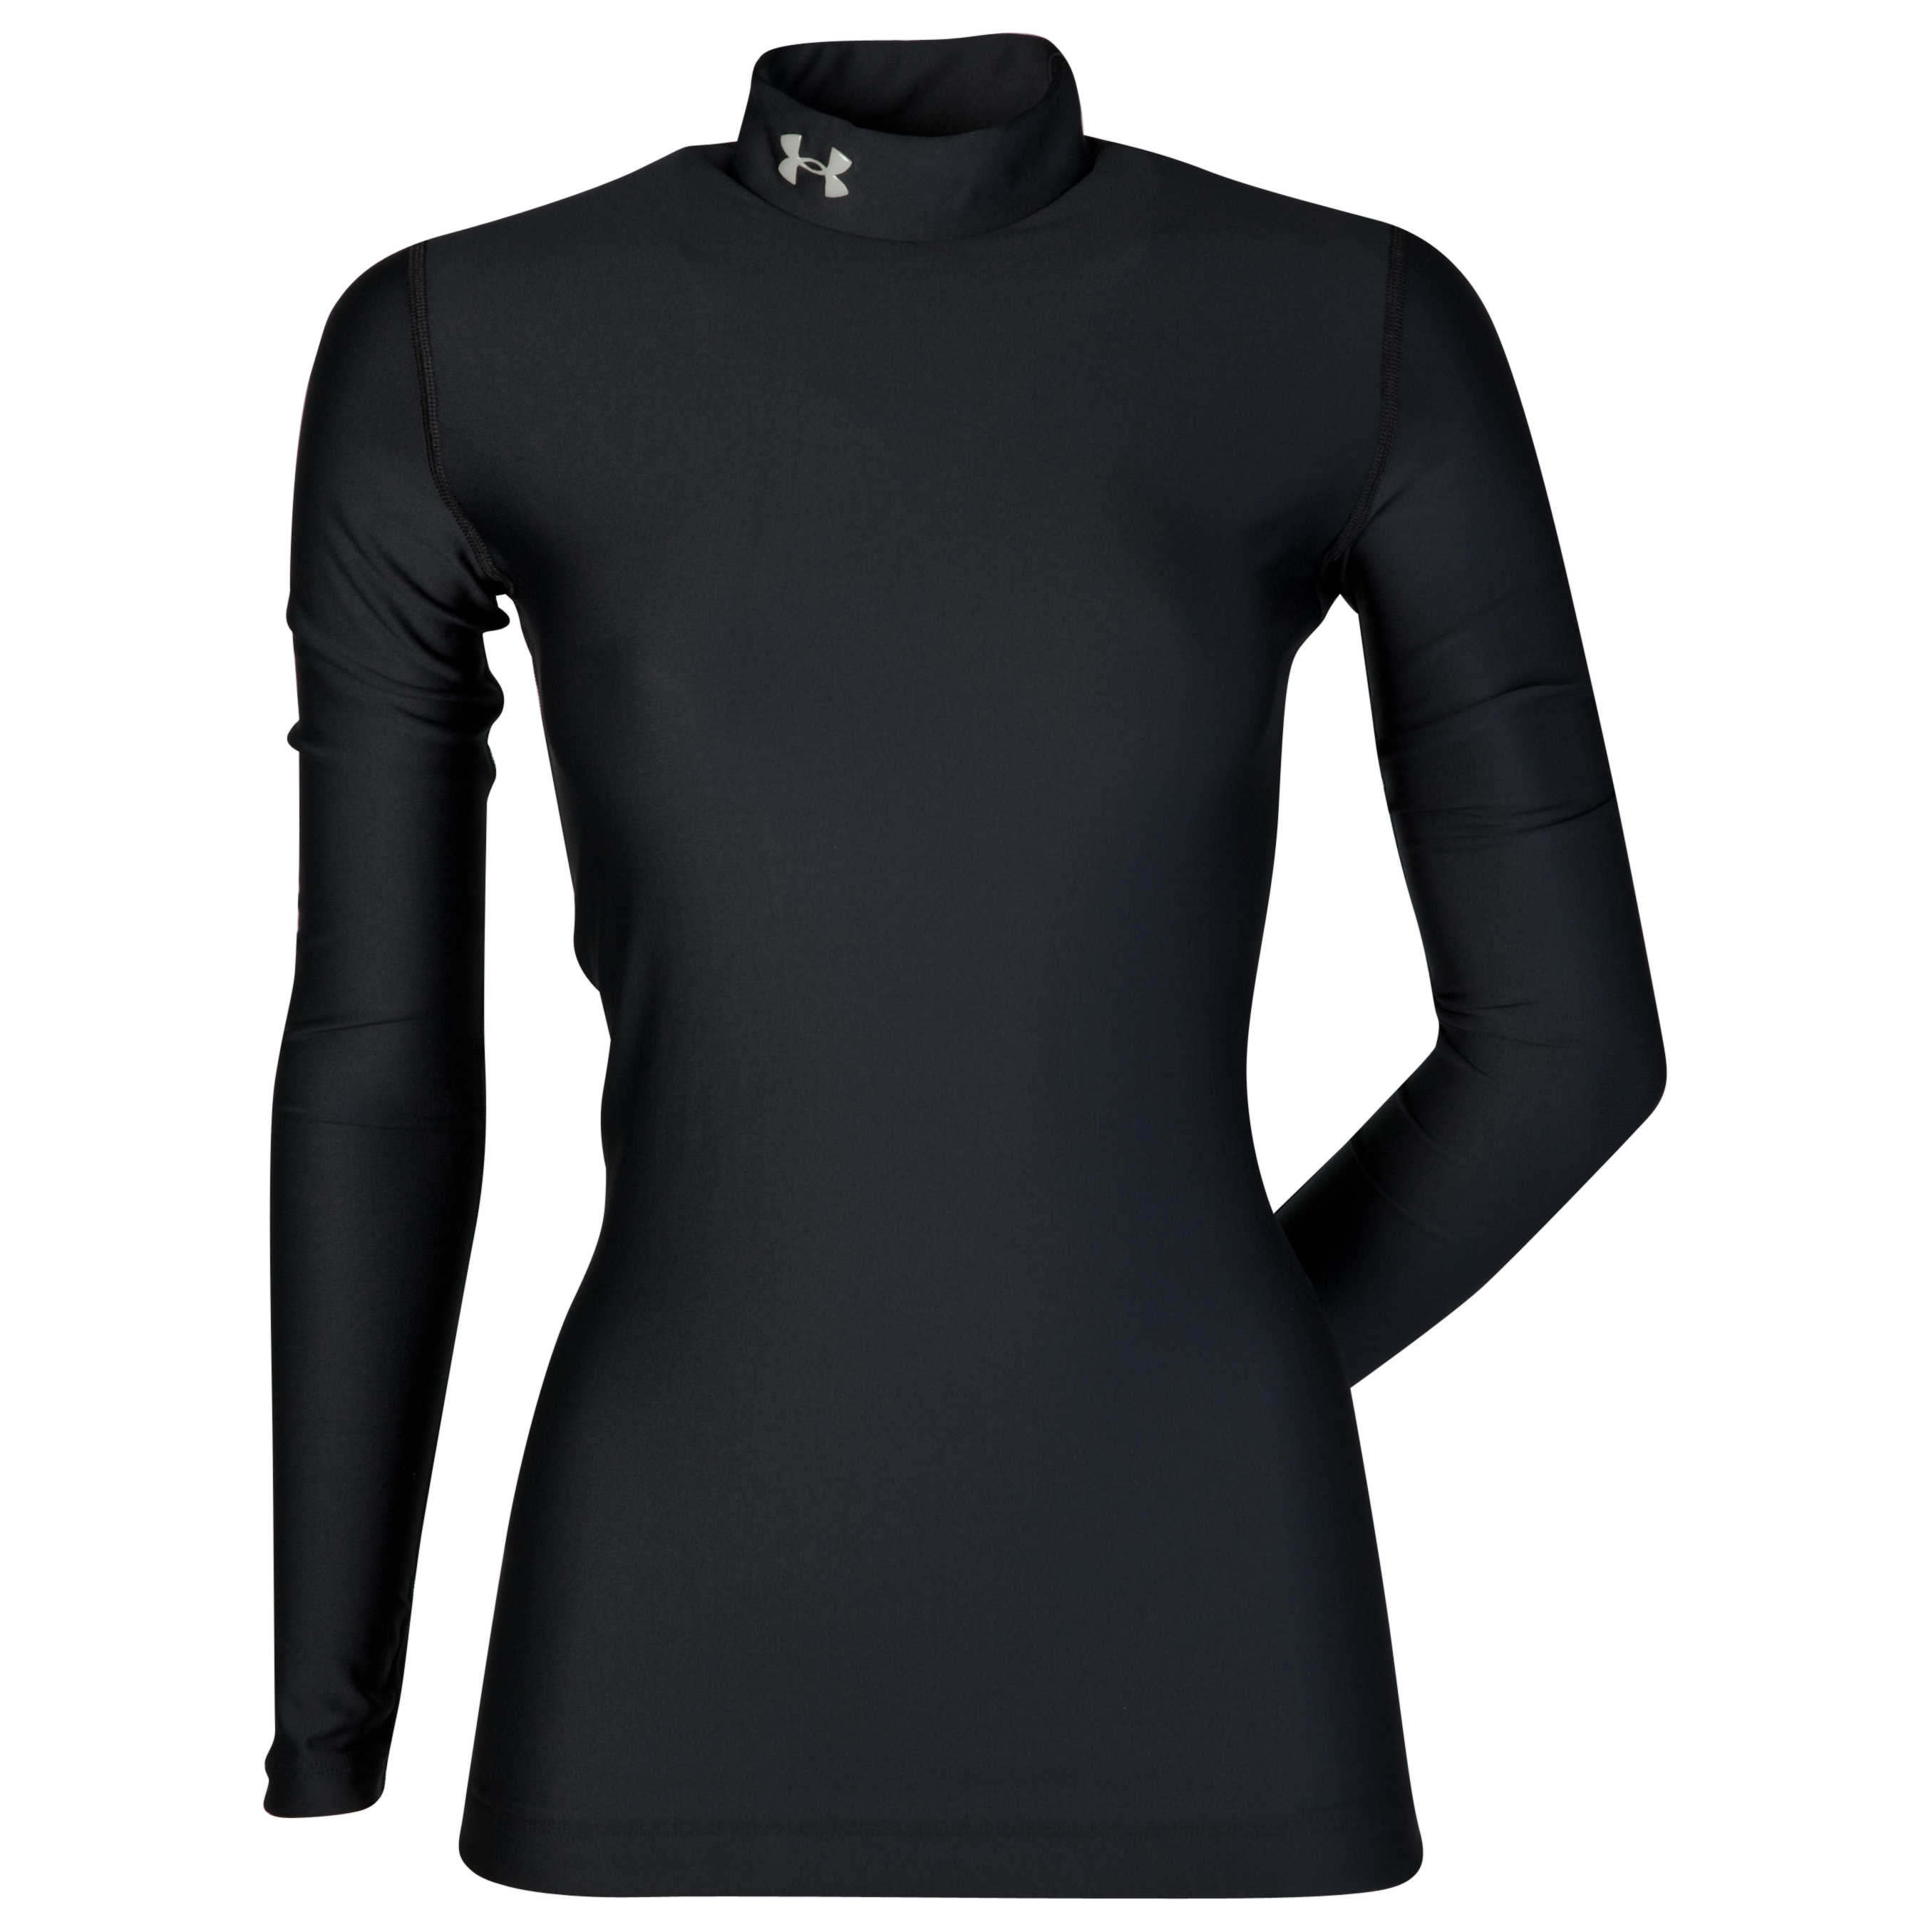 Under Armour Coldgear Compression Mock - Black/Aluminium - Womens